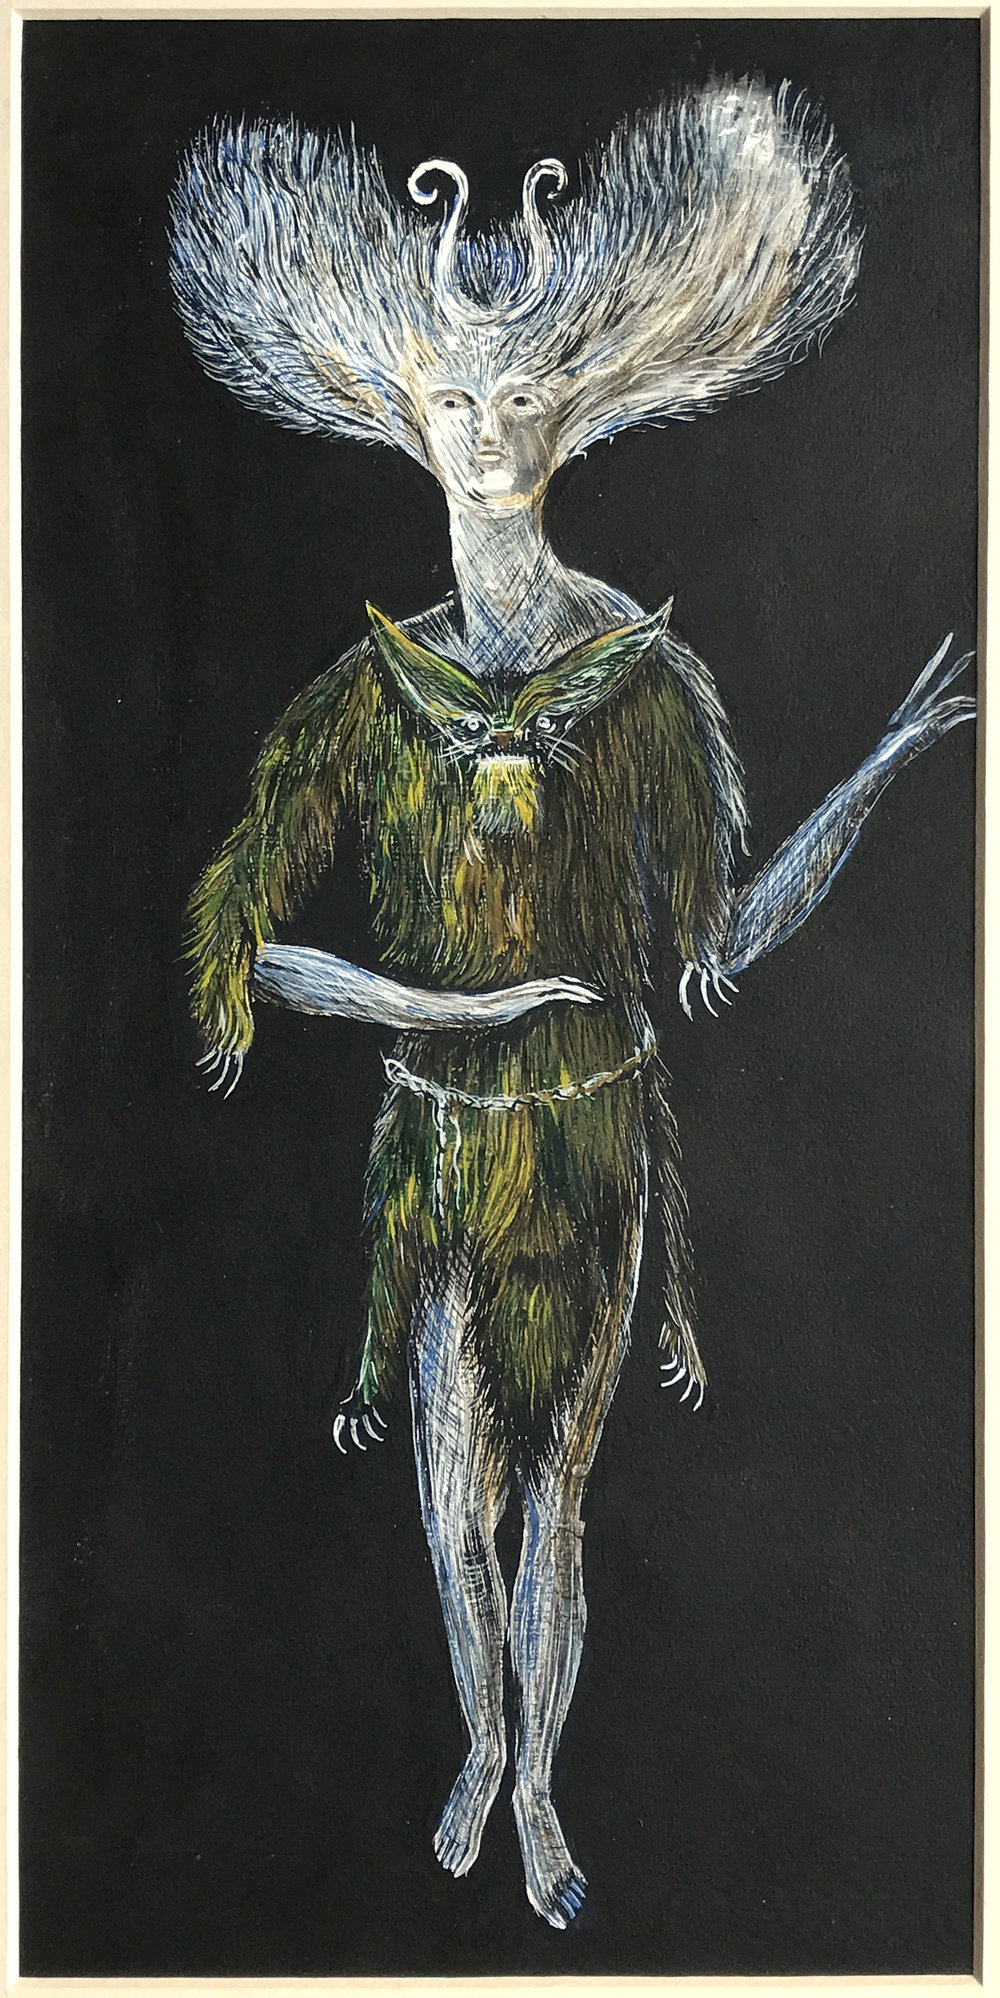 Untitled, c. 1960, Gouache on paper